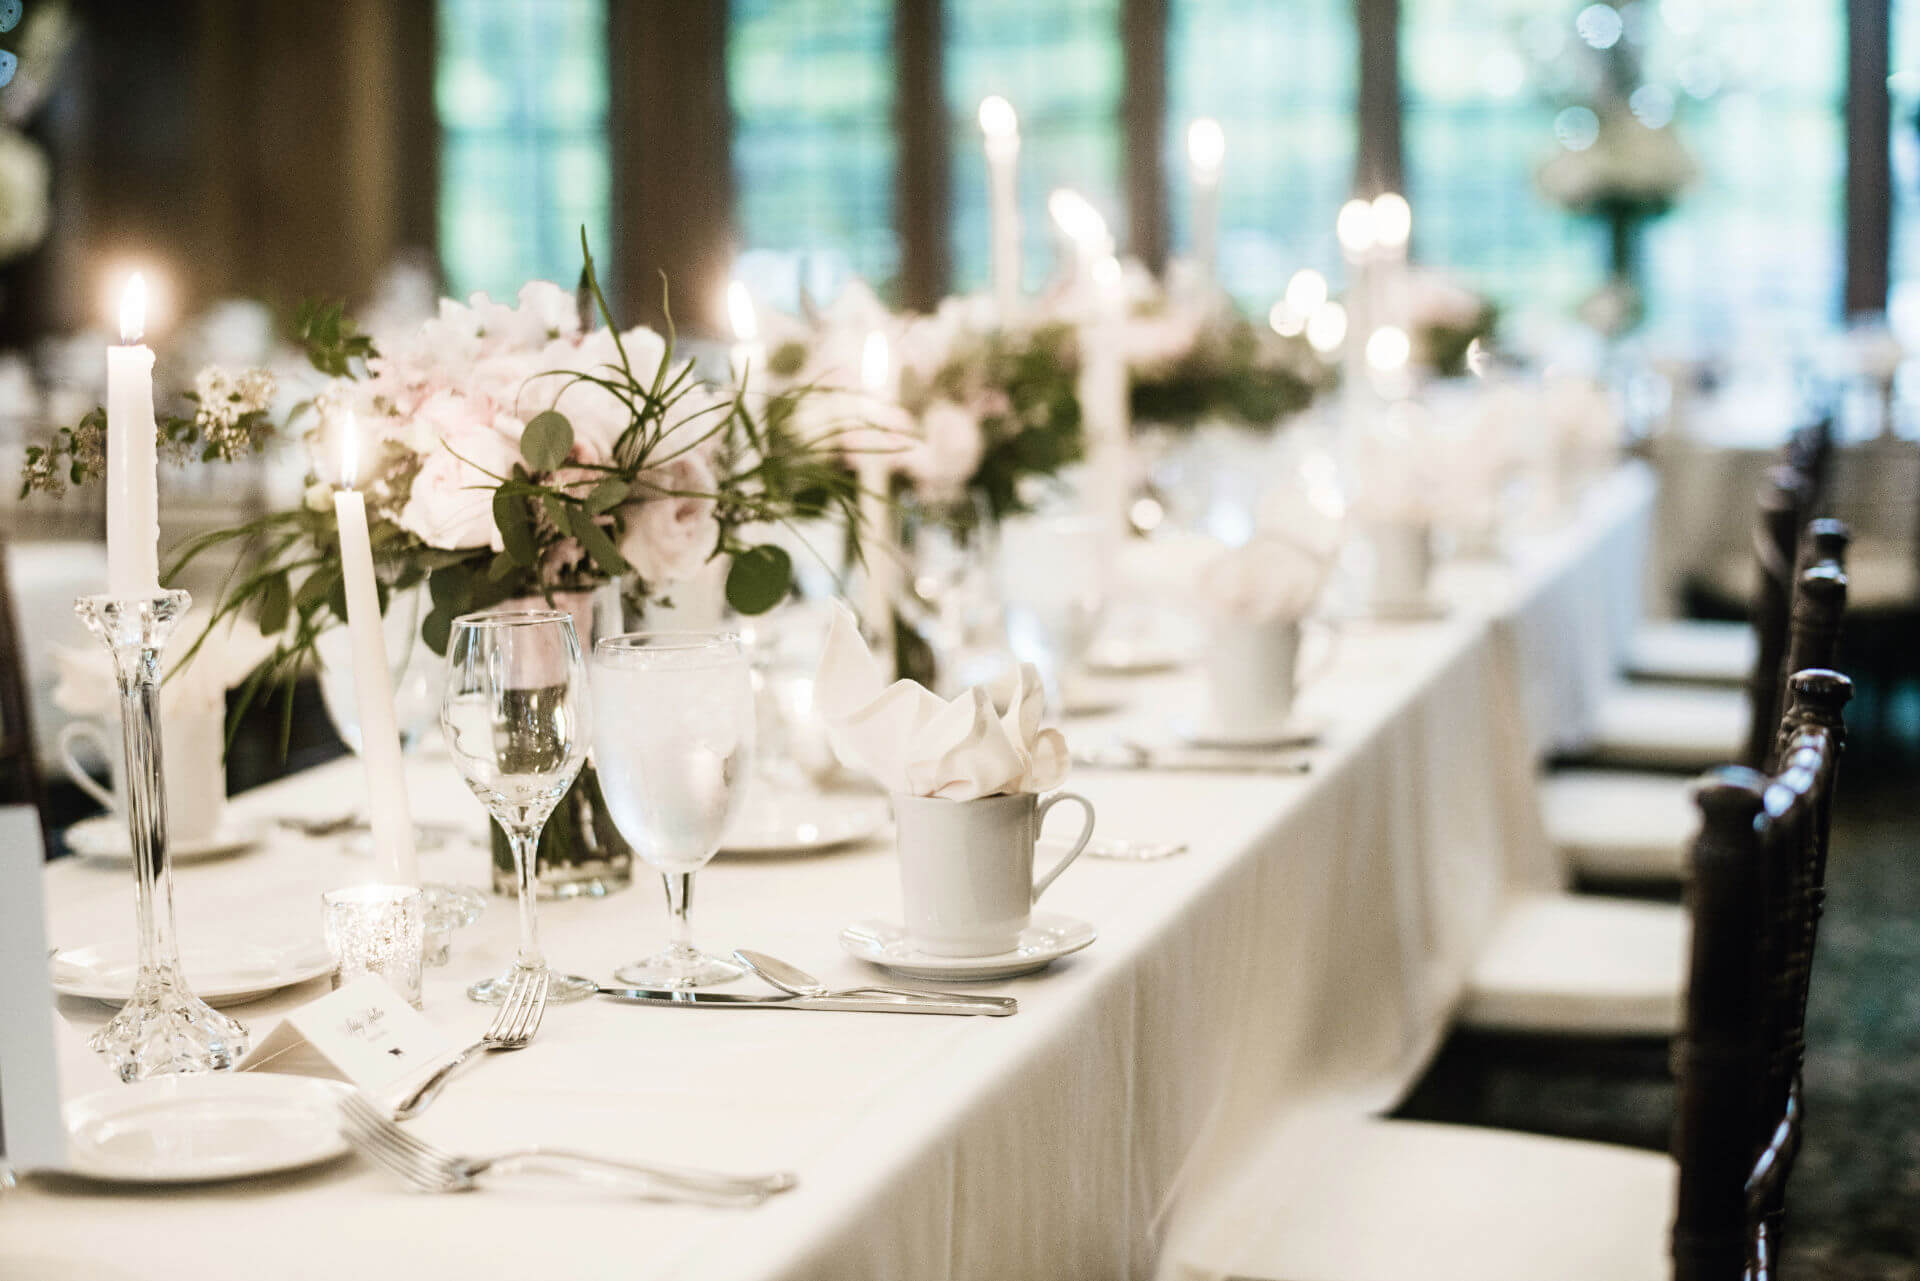 How Far In Advance Should You Book Your Reception Venue?